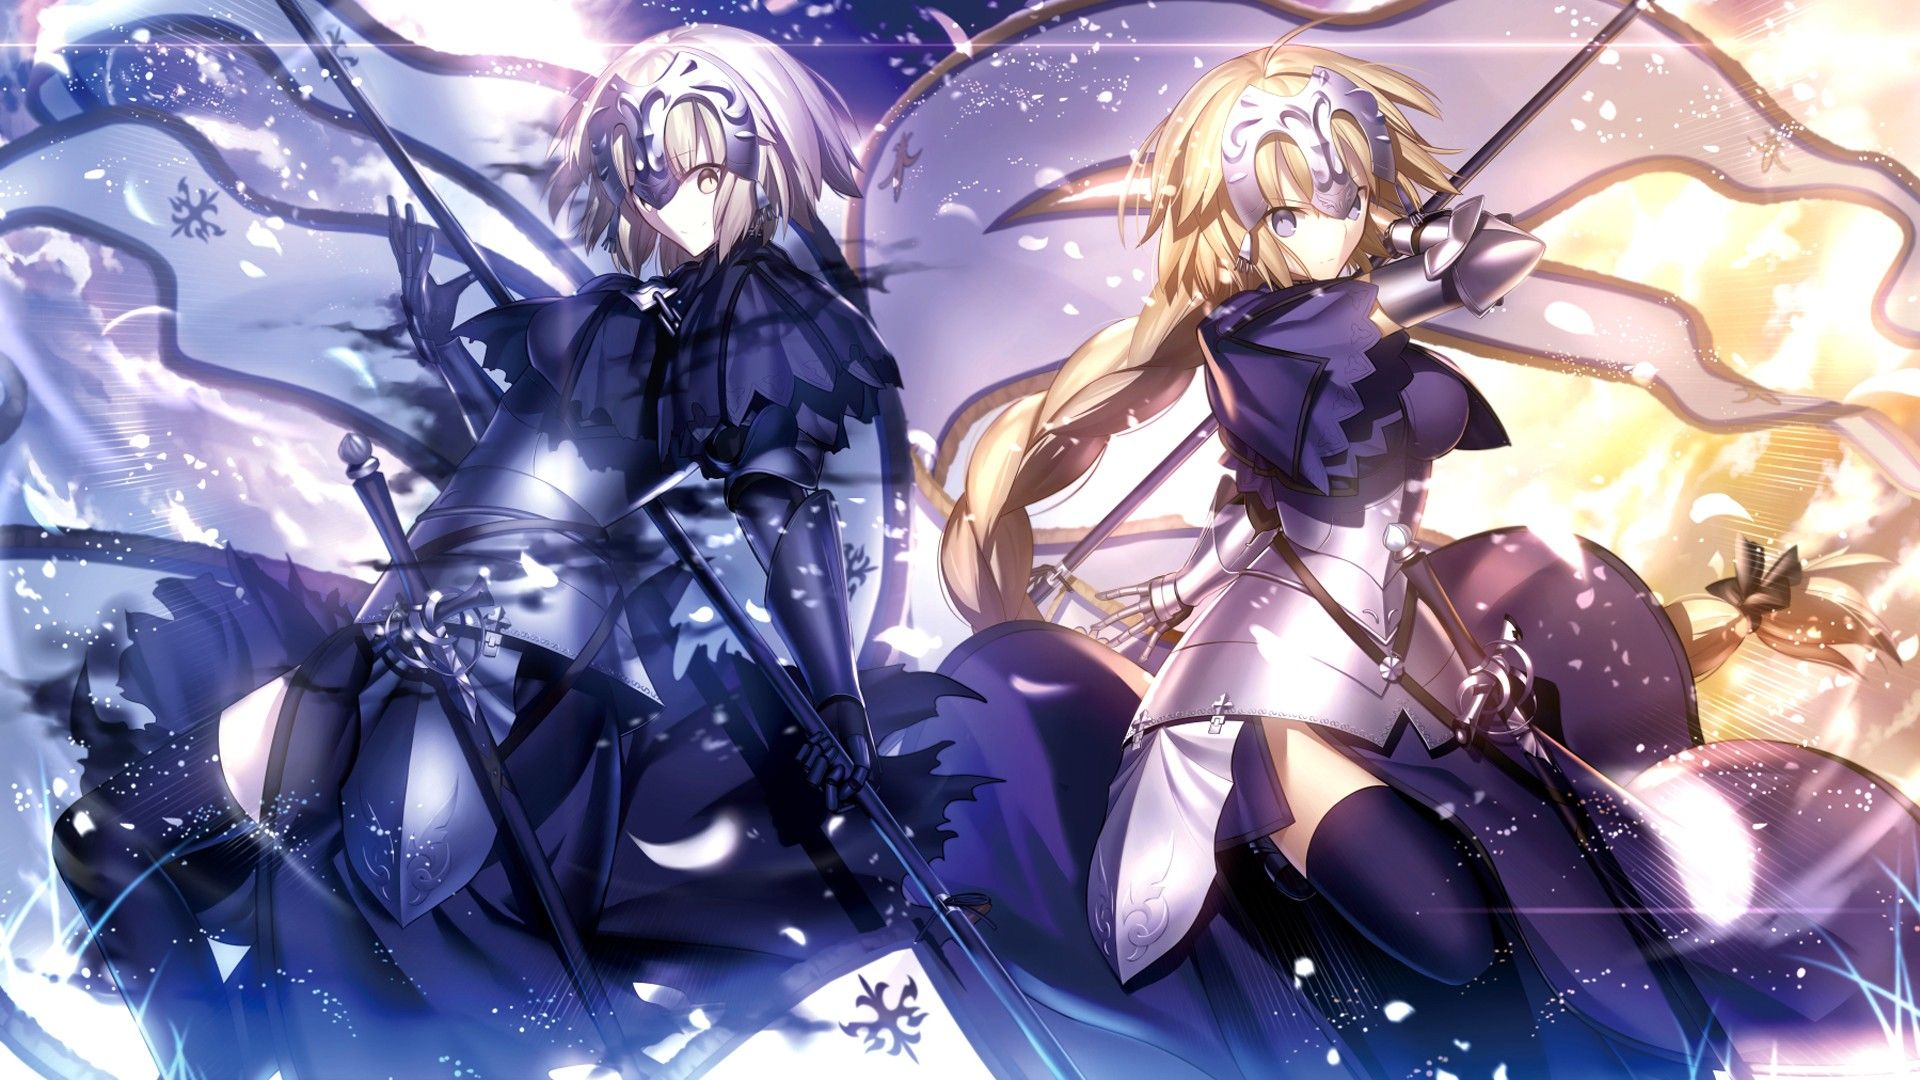 Fate Zero Wallpaper Hd Anime 1920x1080 Fate Grand Order Ruler Fate Grand Order